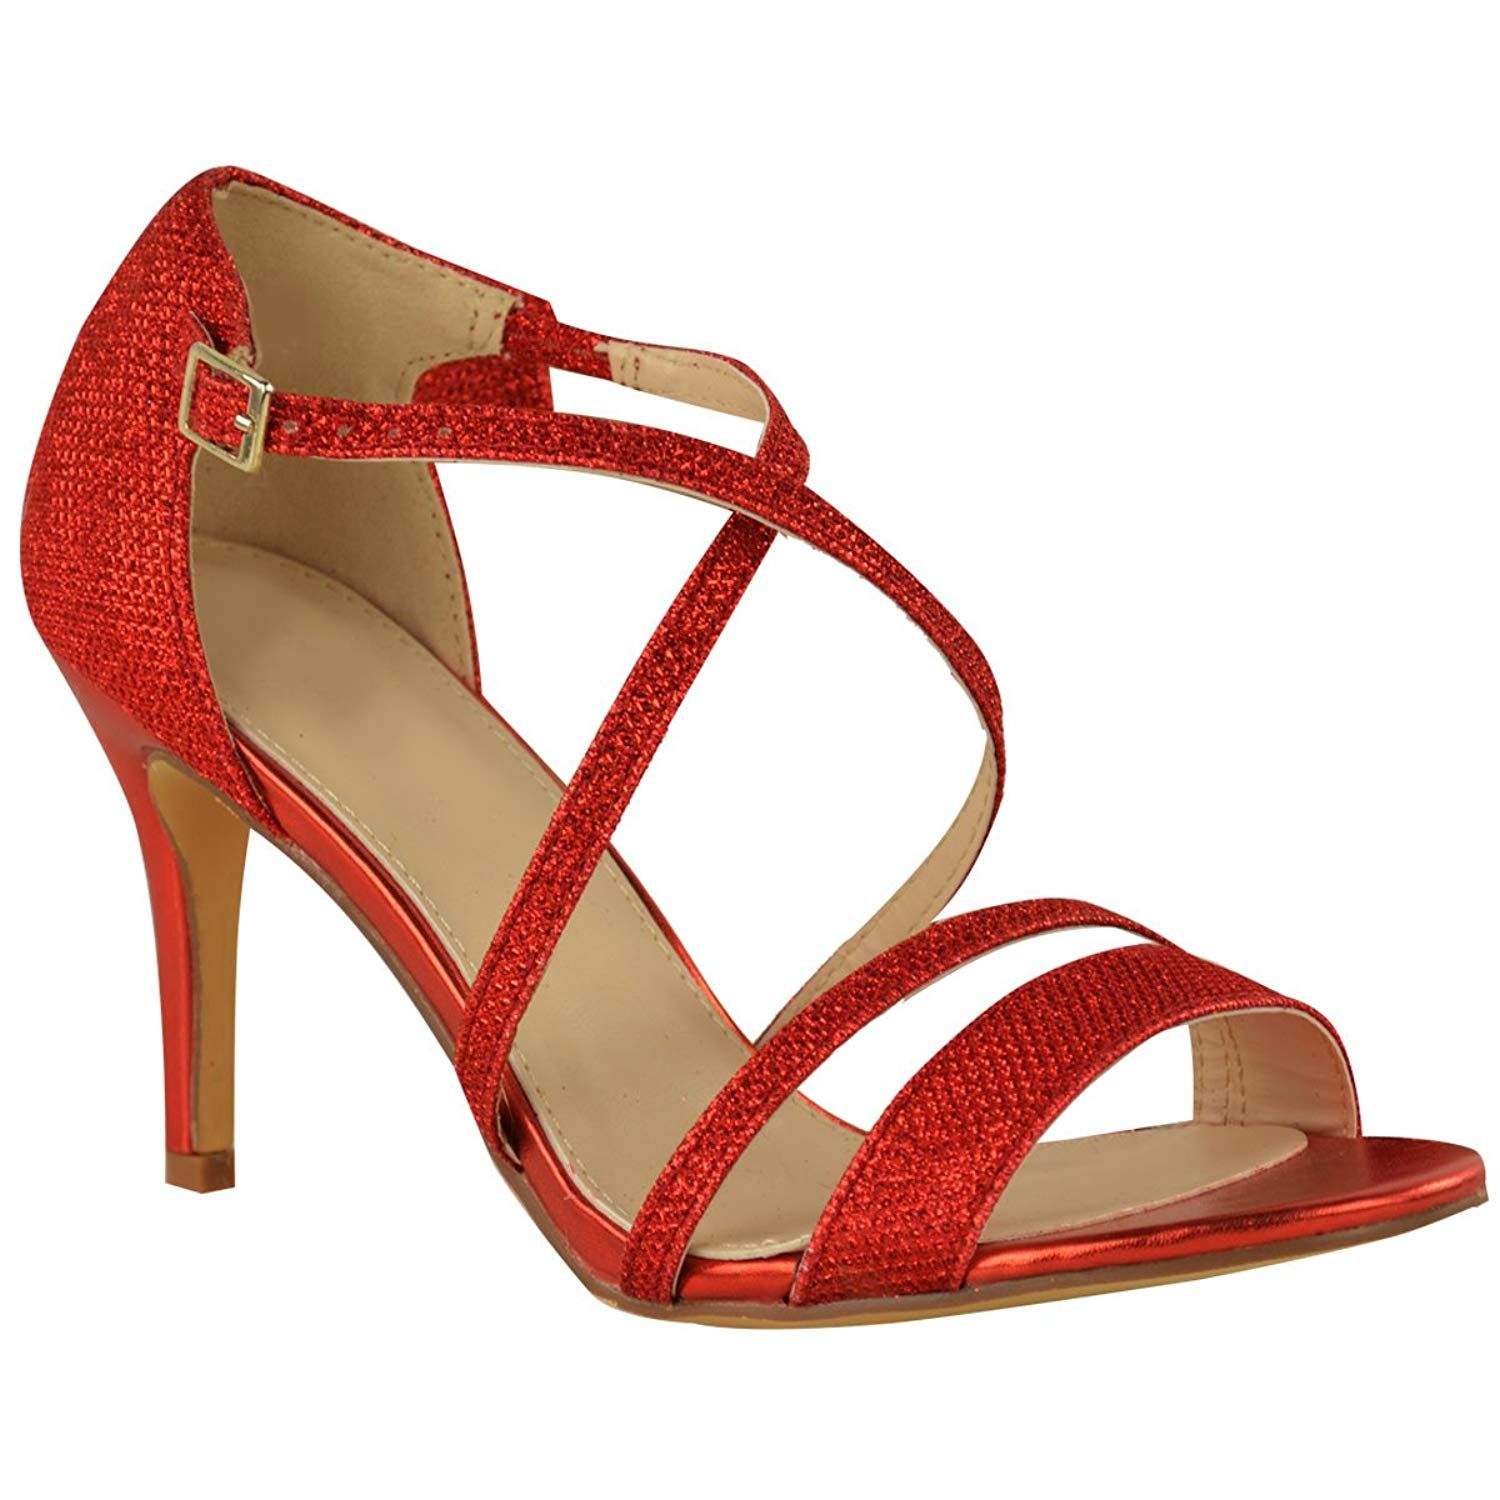 29ac3f7b129 Fashion Thirsty Womens Low Kitten Heel Strappy Sandals Party Prom Wedding  Diamante Shoes Size. Fashion